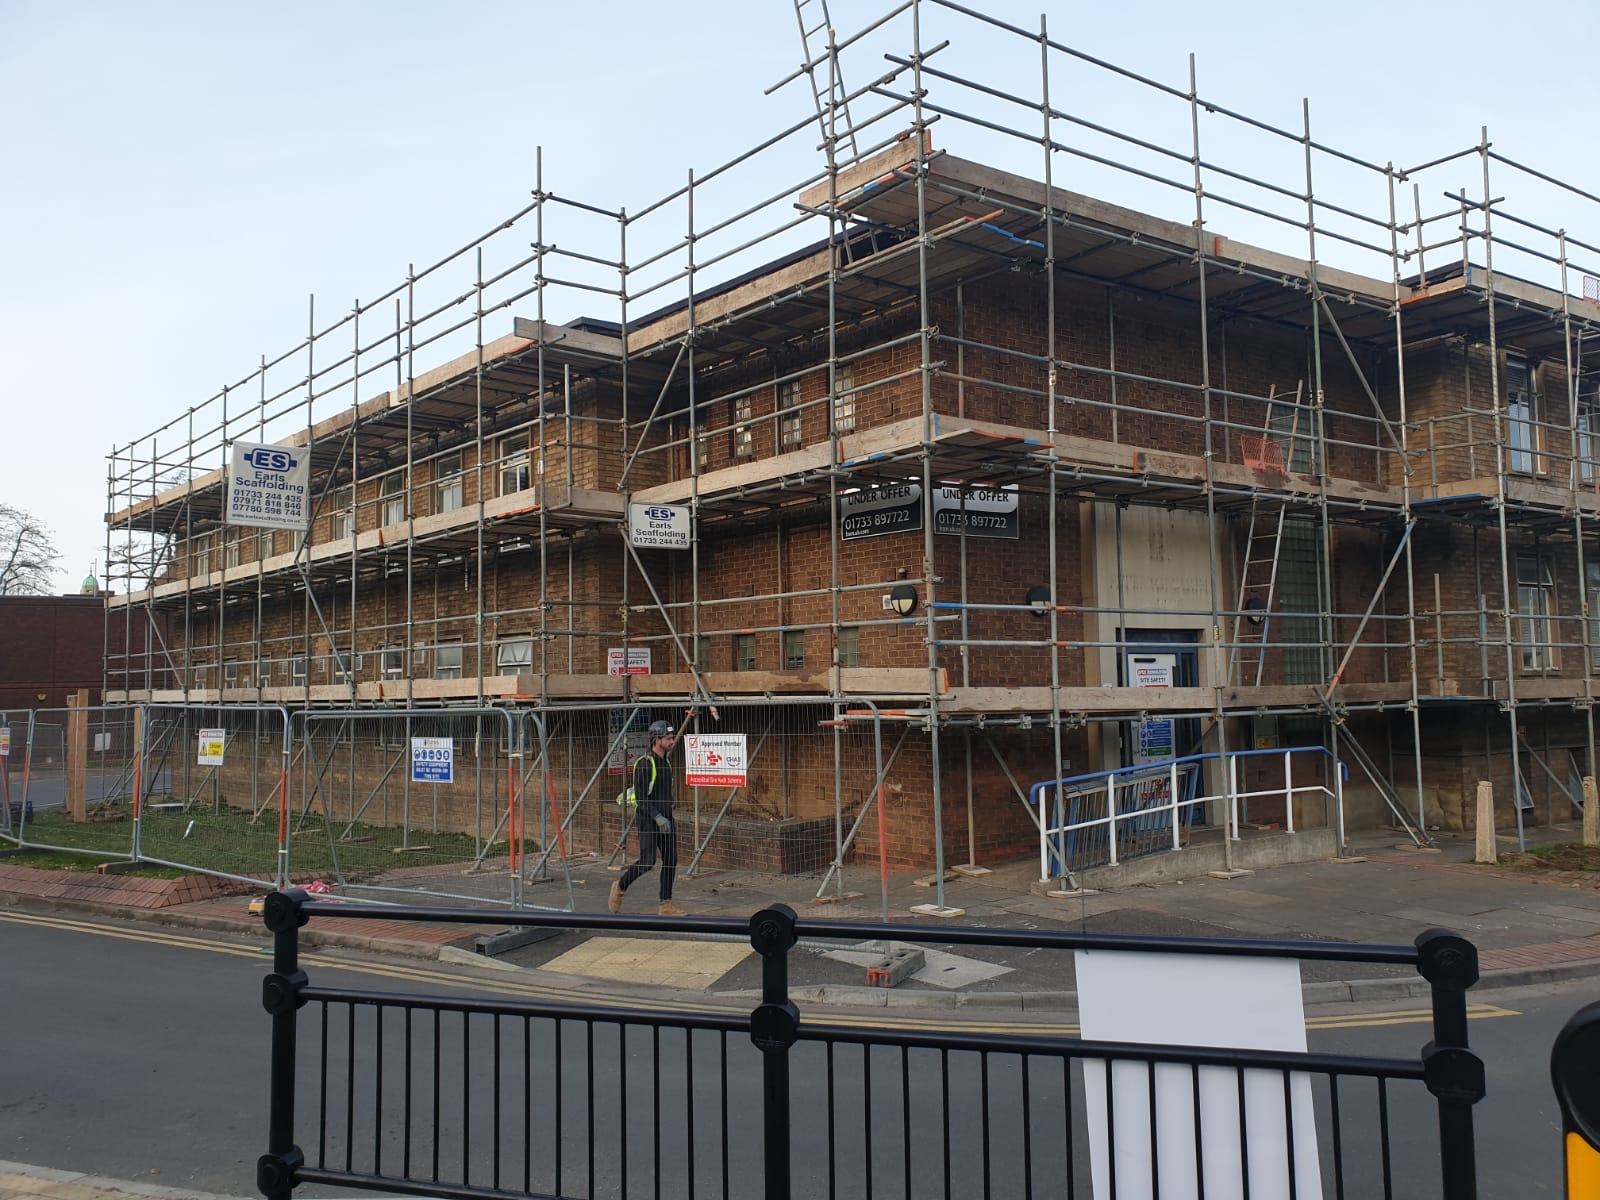 Earls Scaffolding - Independent Tied Scaffolding - Peterborough Police Station - Commercial Scaffolding